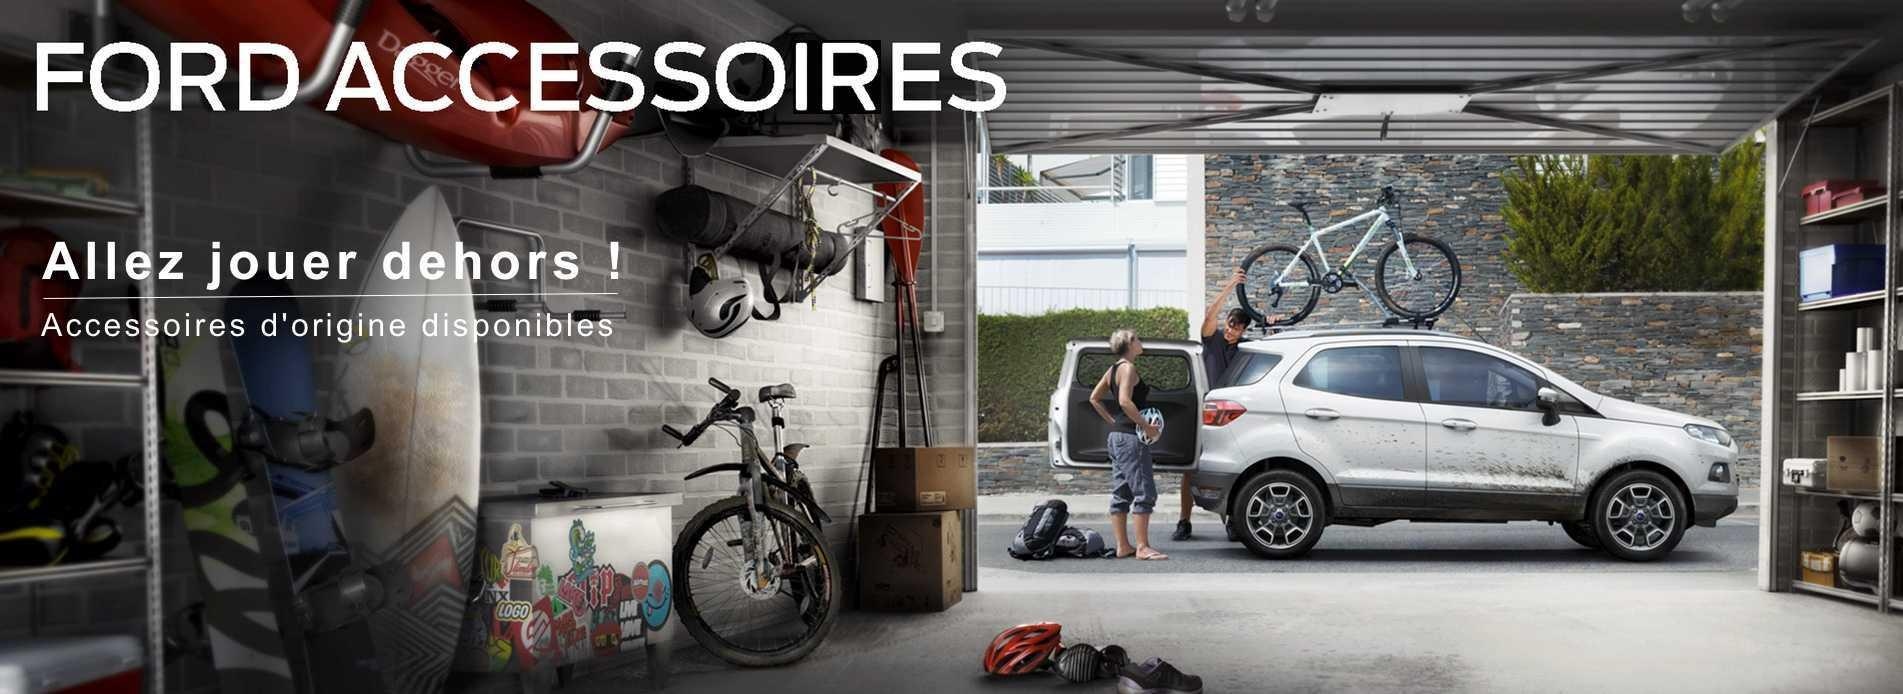 Ford Accessoires image